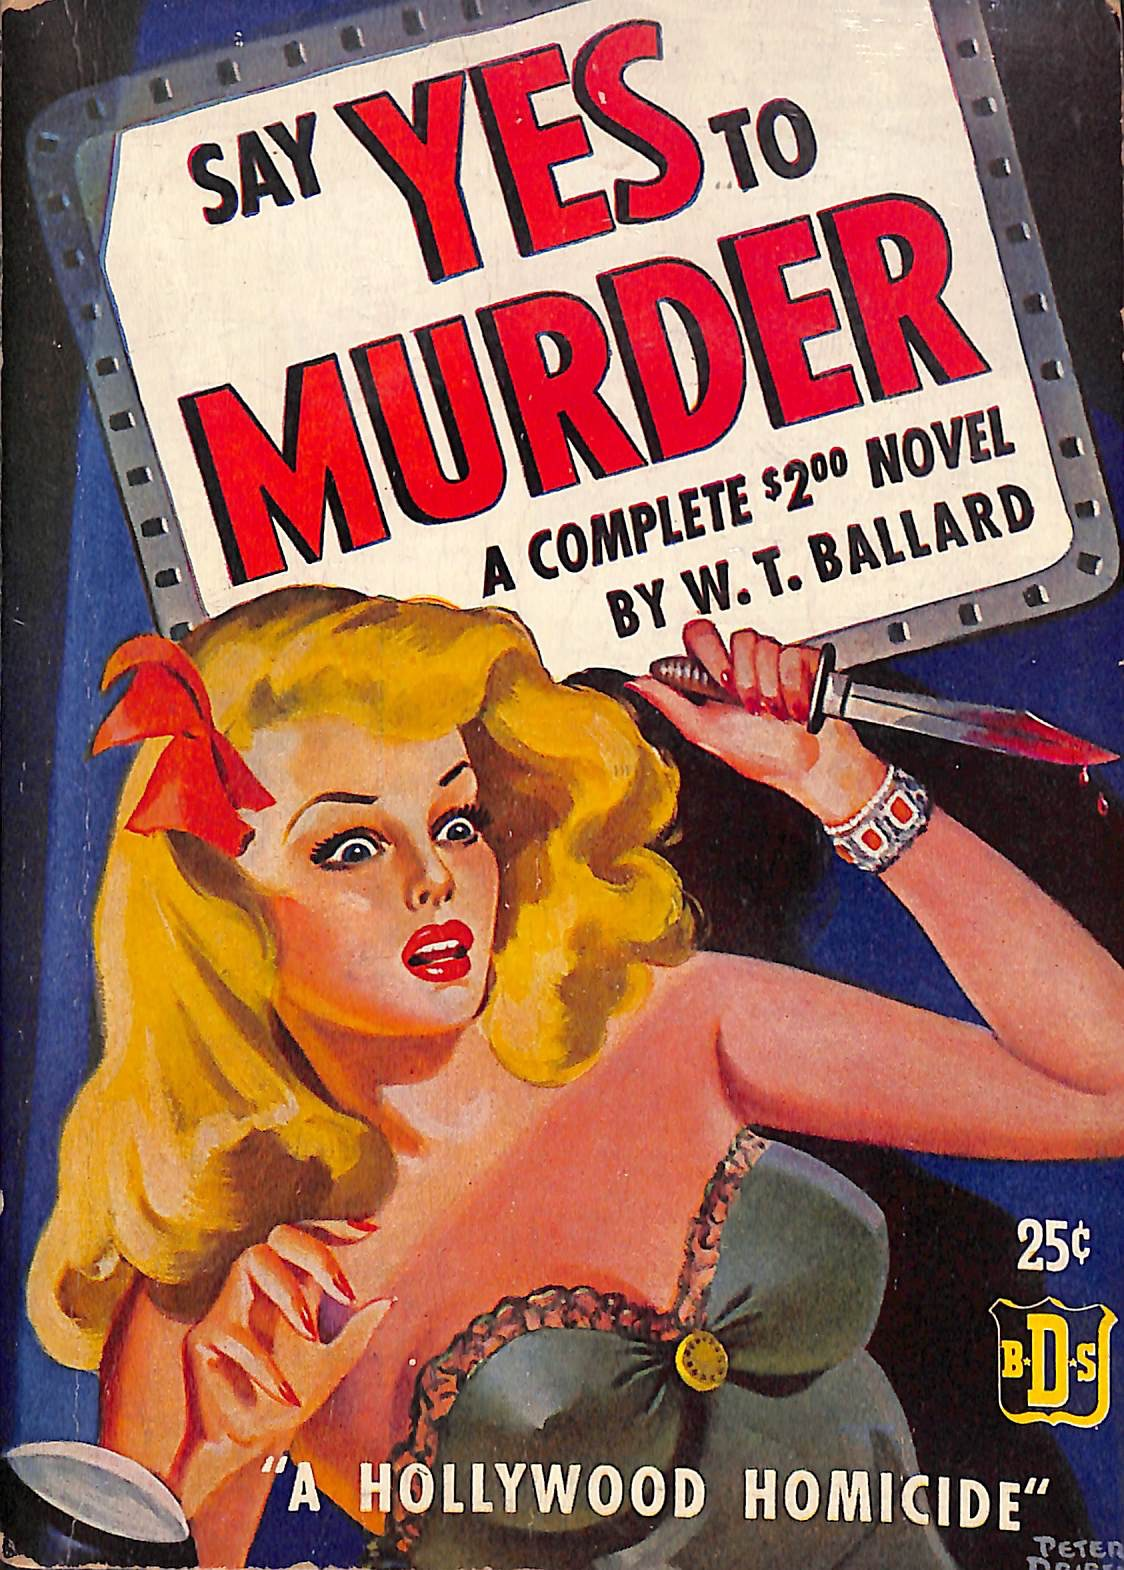 Say Yes To Murder W.T. Ballard Willis Todhunter (W. T.) Ballard was an American author, known for his Westerns and mystery stories, novelettes, and book-length novels. A tremendousl